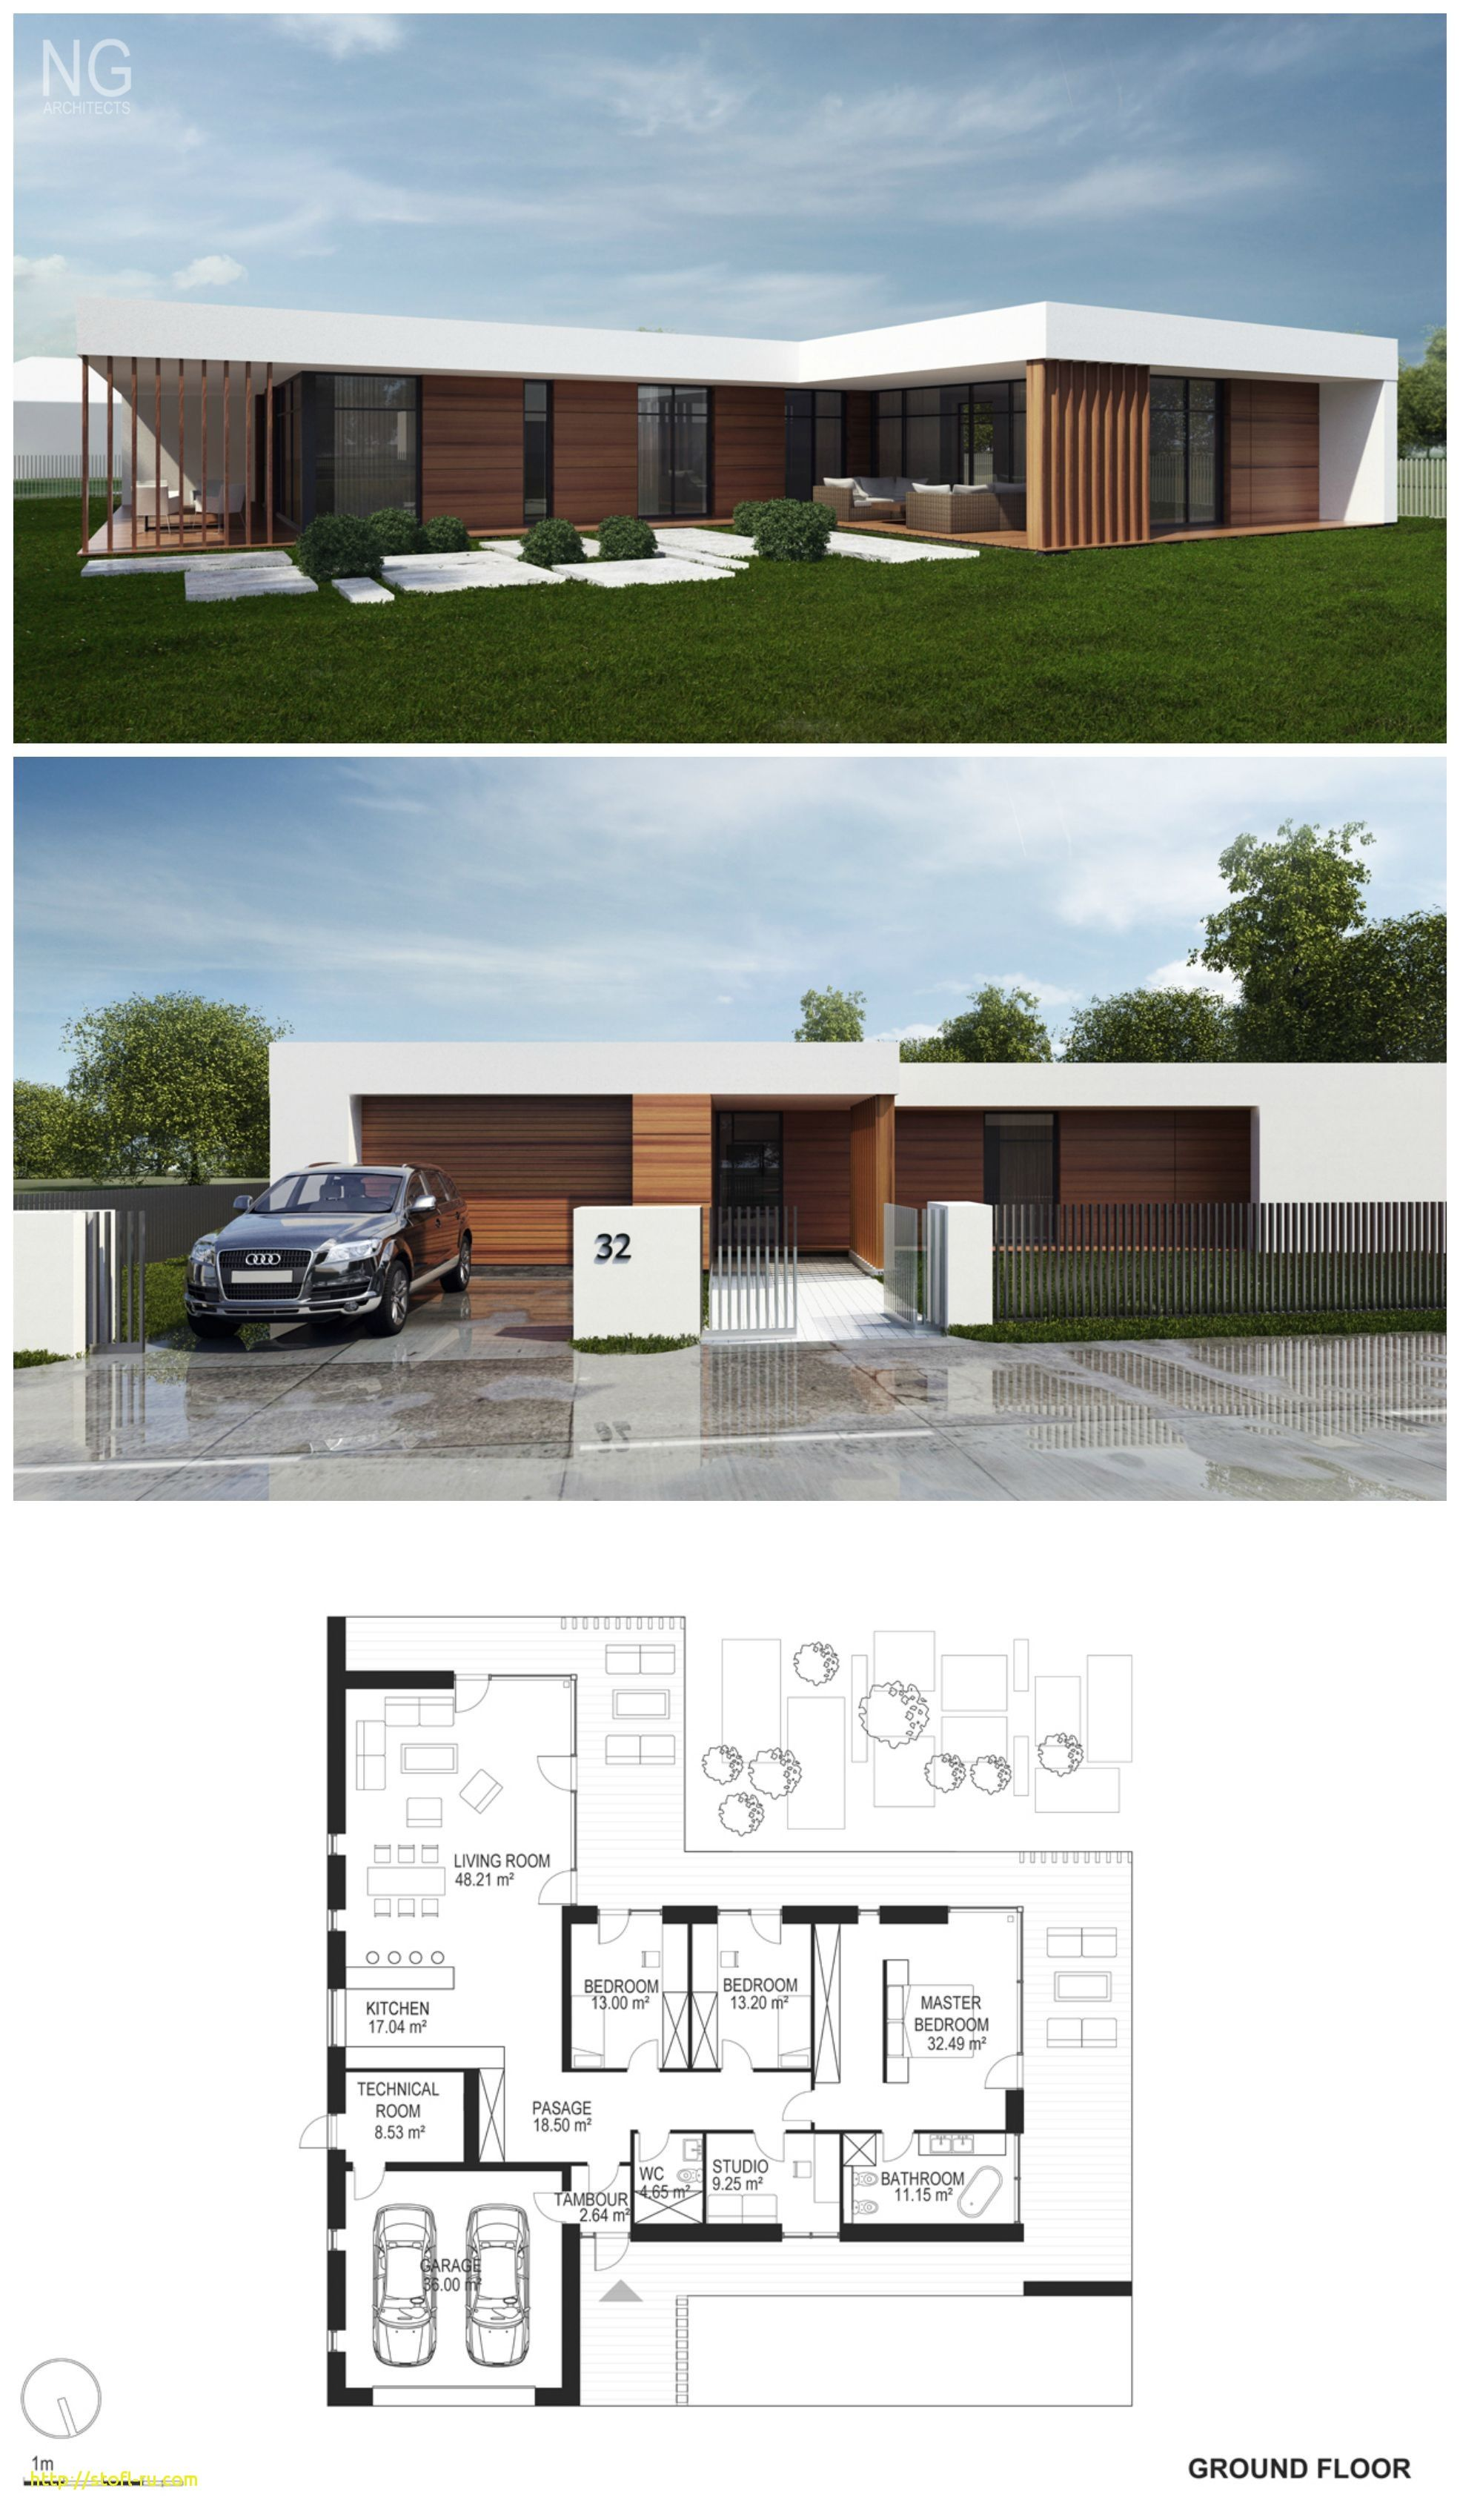 Small Modern House Building Plans Modern Style House Design Ideas Housebuilding House Modernhouse Building Haus Plane Haus Architektur Architektur Haus